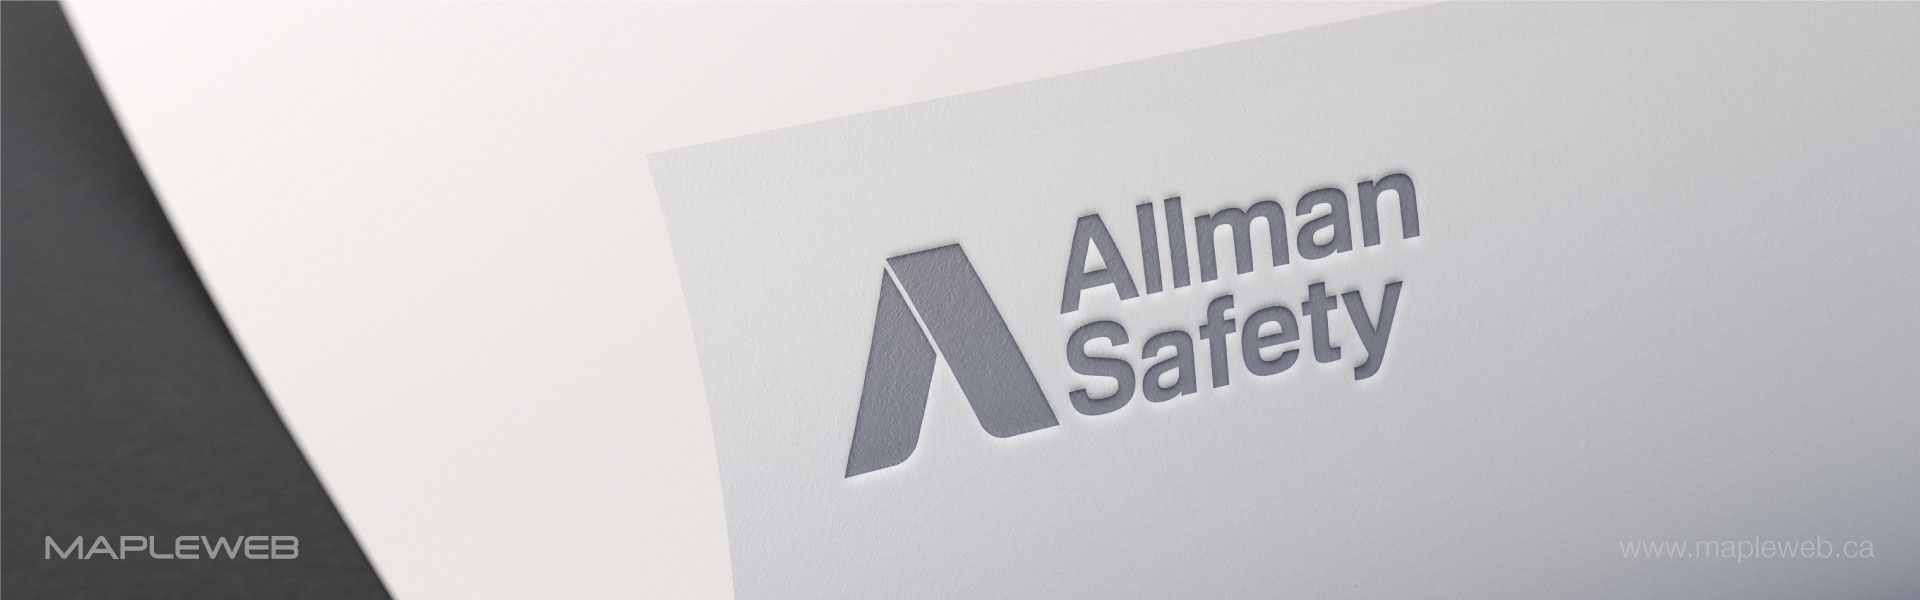 allman-safety-brand-logo-design-by-mapleweb-vancouver-canada-white-paper-mock